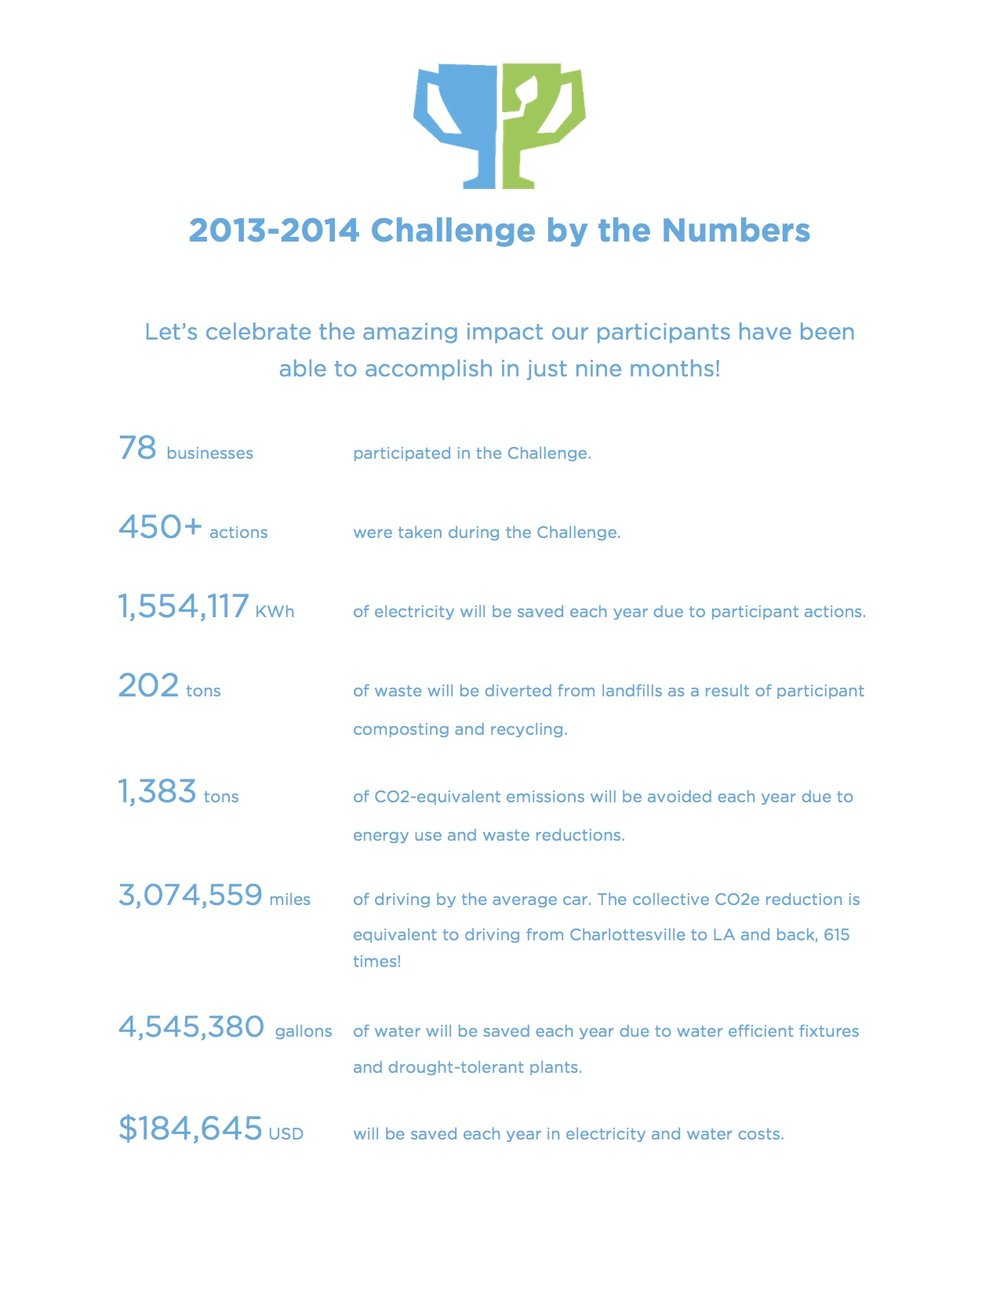 2013-14 Challenge by the Numbers_revised.jpg